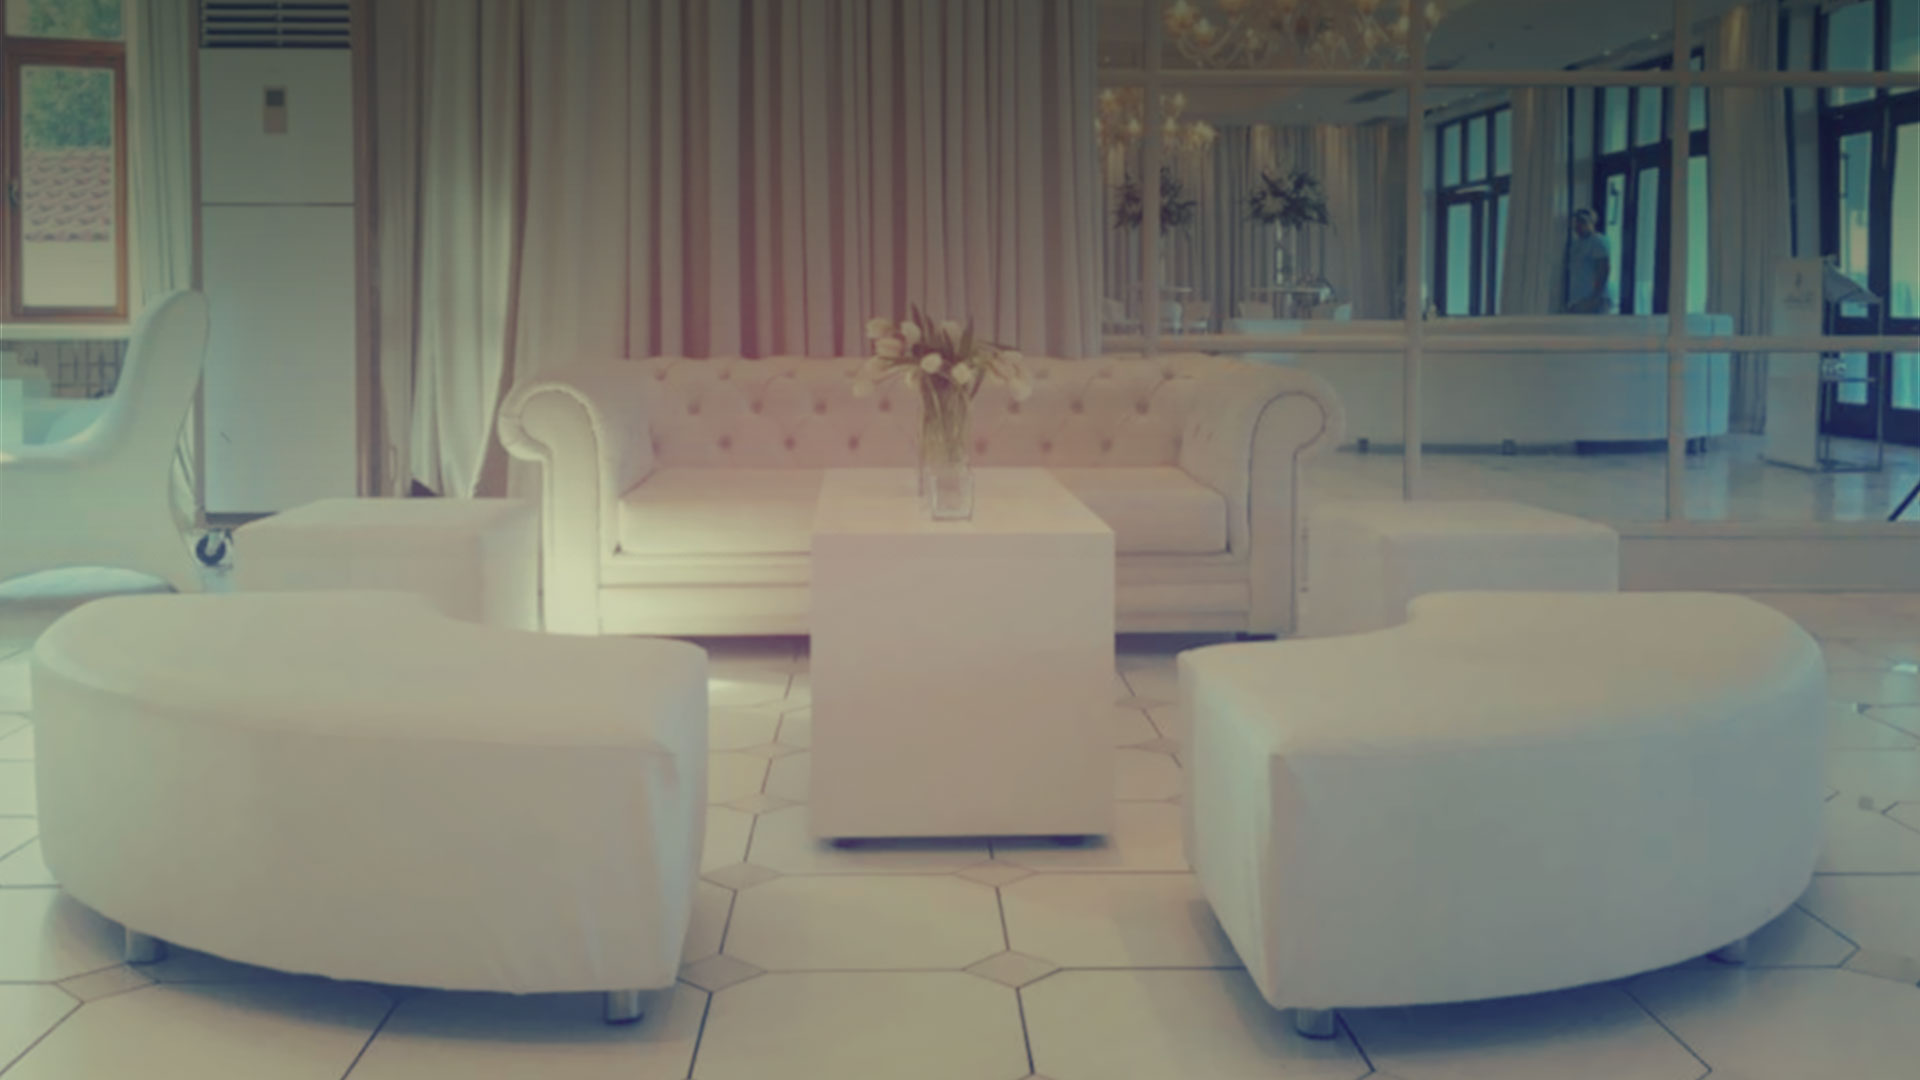 unique, upscale furniture rentals